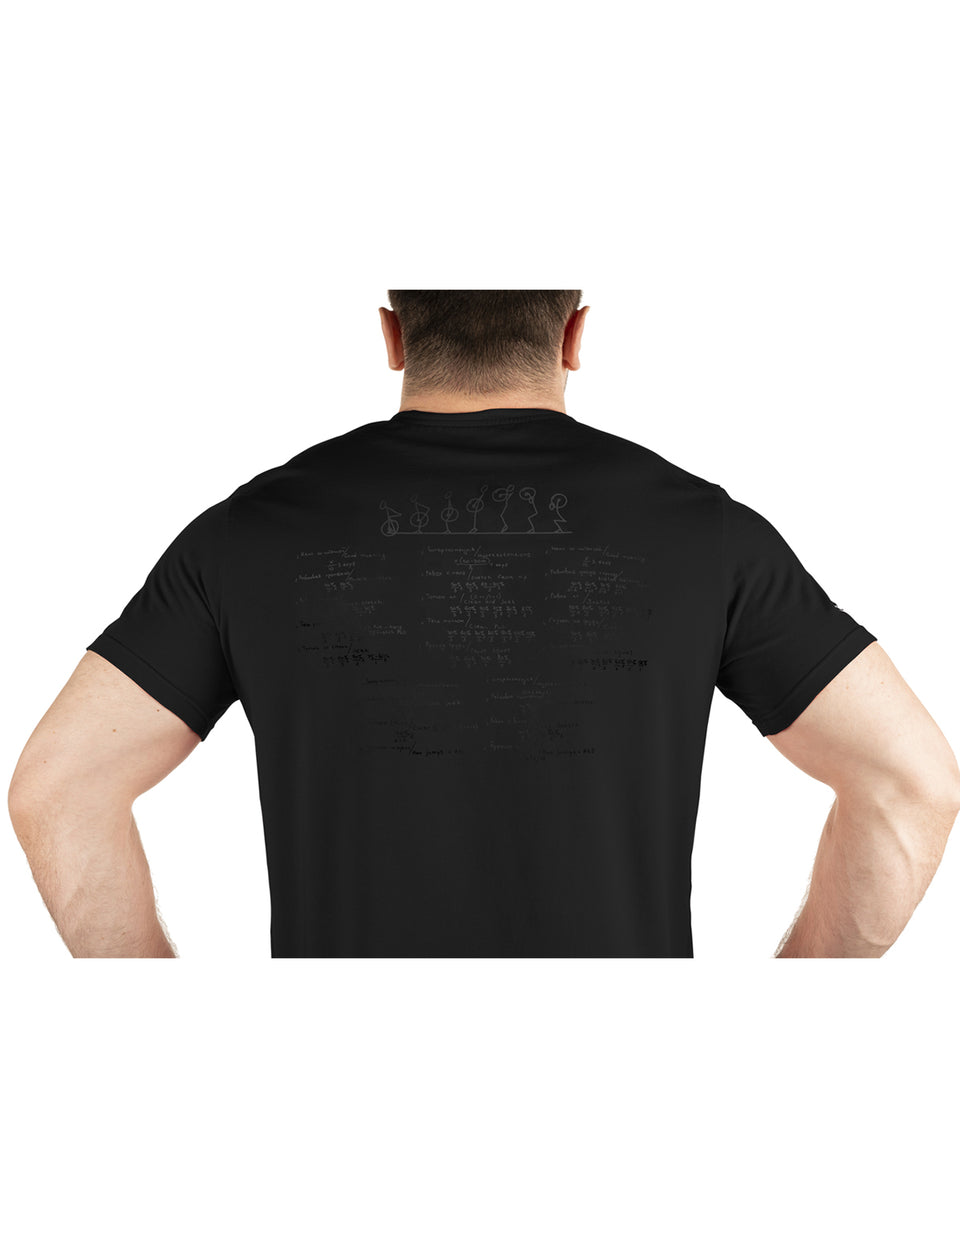 Warm Body Cold Mind Men's T-Shirt V2 Black on Black